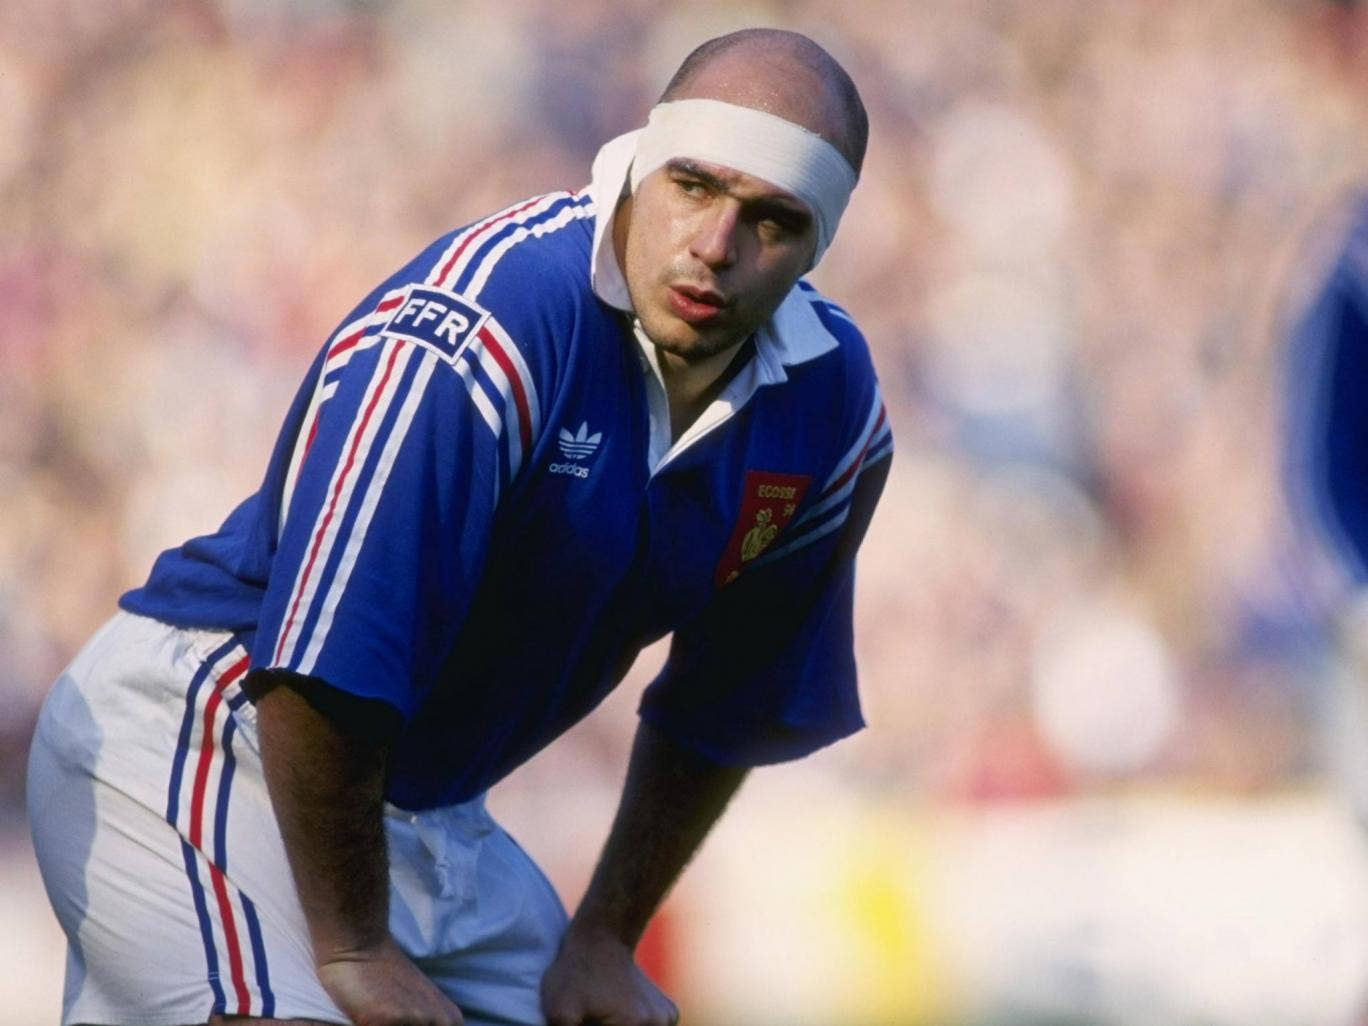 Laurent Benezech during his playing days